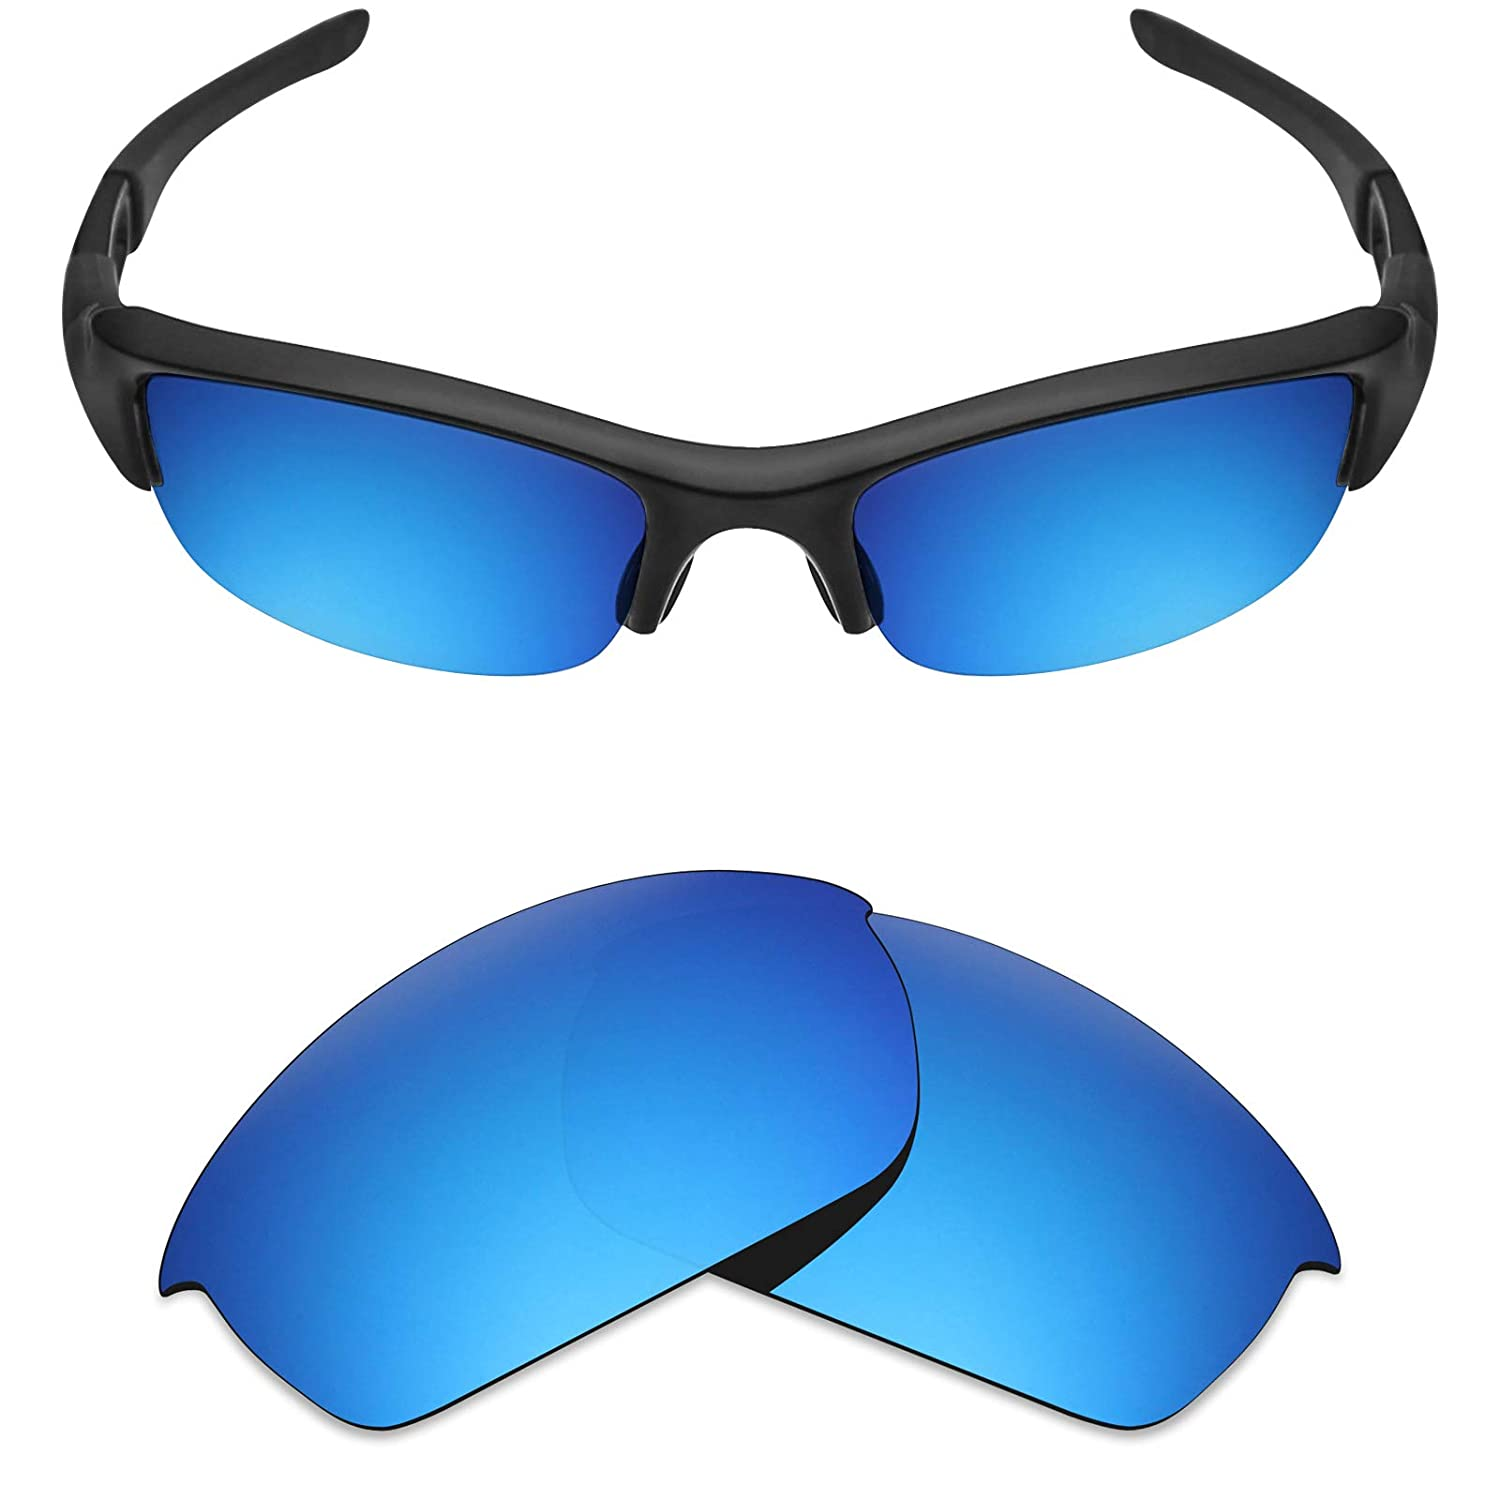 4a0f6a9ff852 ... Mryok Replacement Lenses for Oakley Flak Jacket - Options MryLens  OY034FHC03SC ...